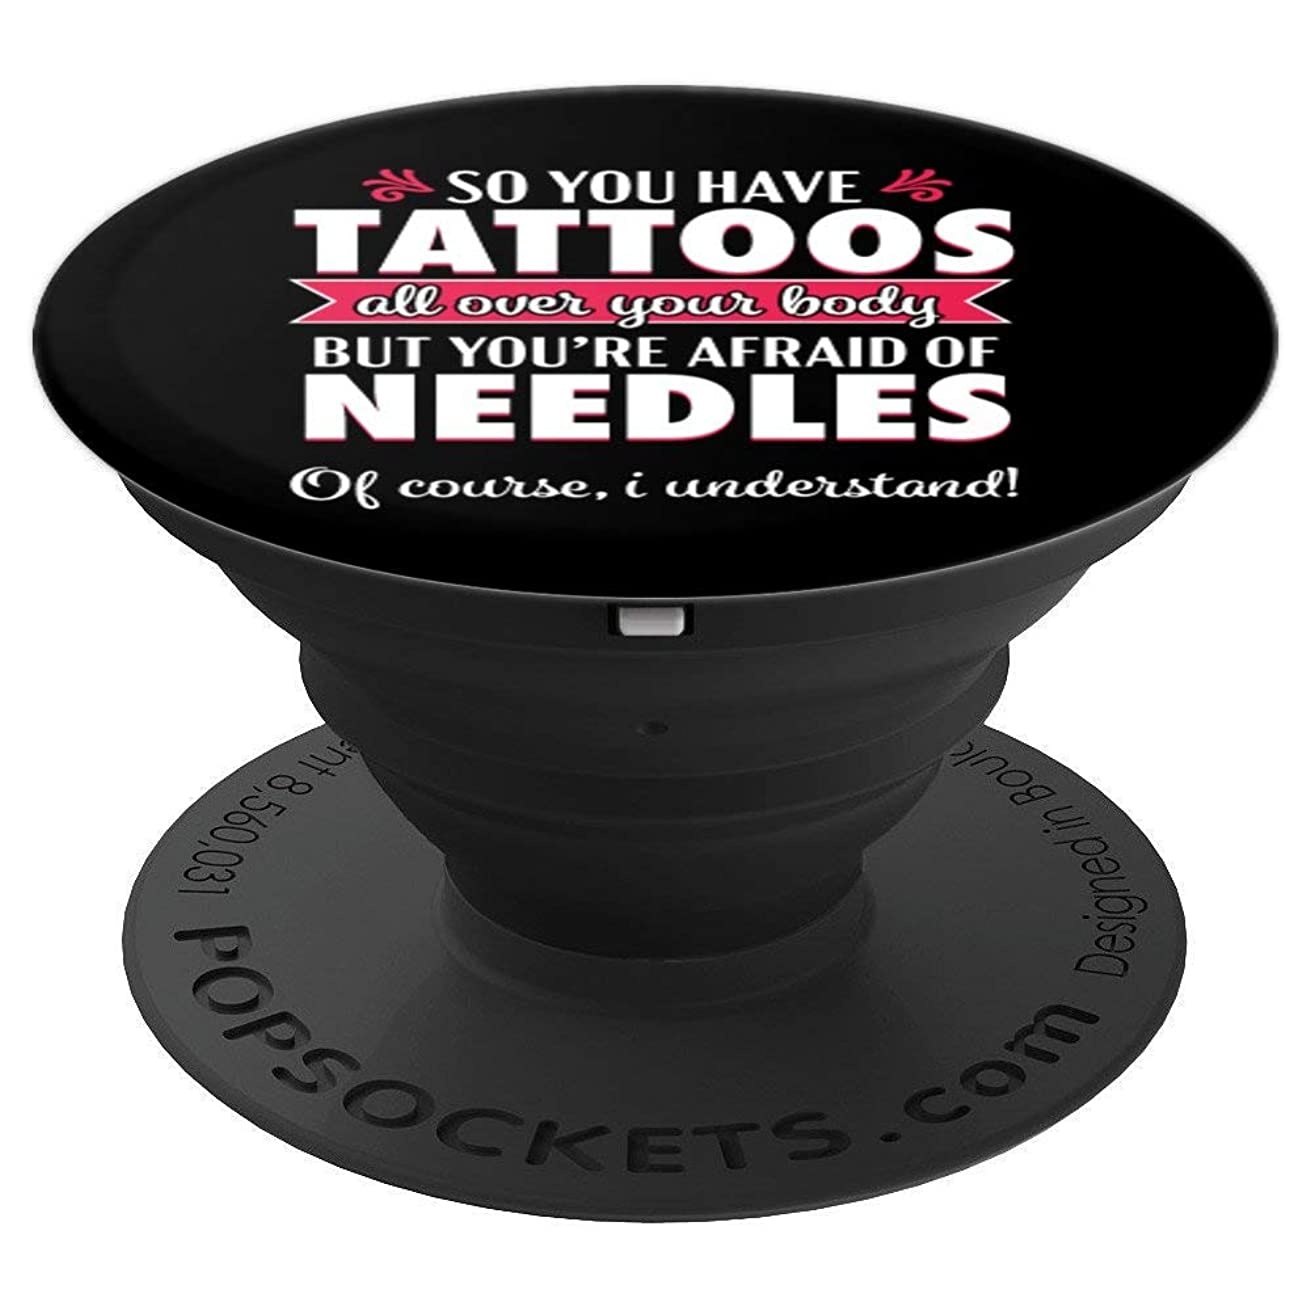 Phlebotomist Funny Phlebotomy Sarcastic Quote Gift - PopSockets Grip and Stand for Phones and Tablets